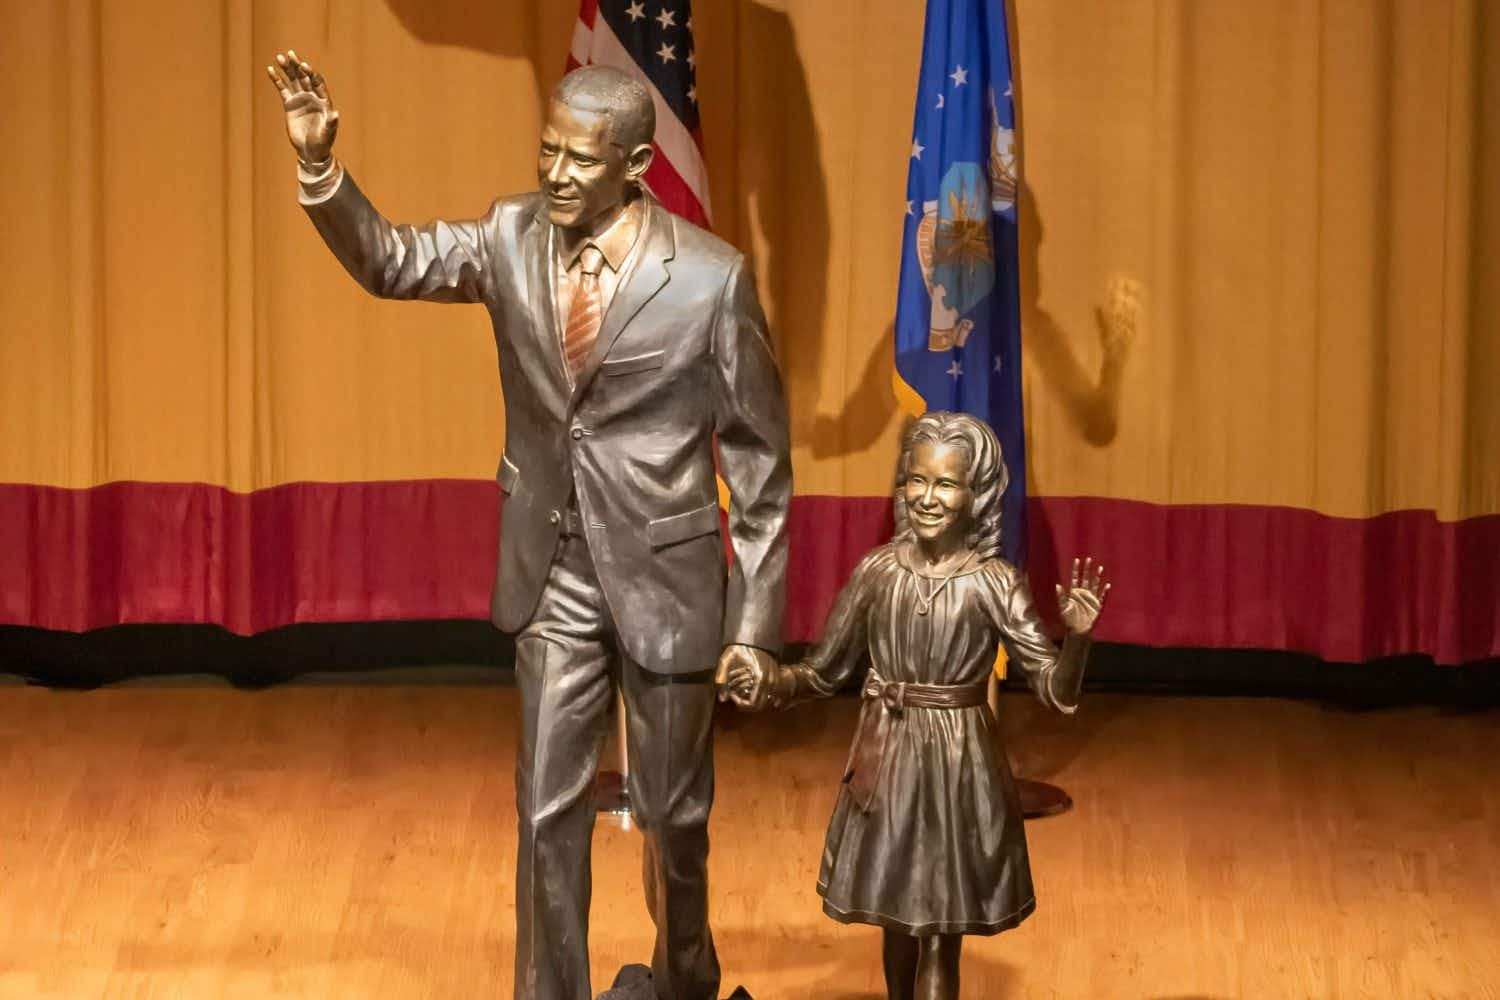 New statue of Barack Obama and his daughter Sasha unveiled in South Dakota